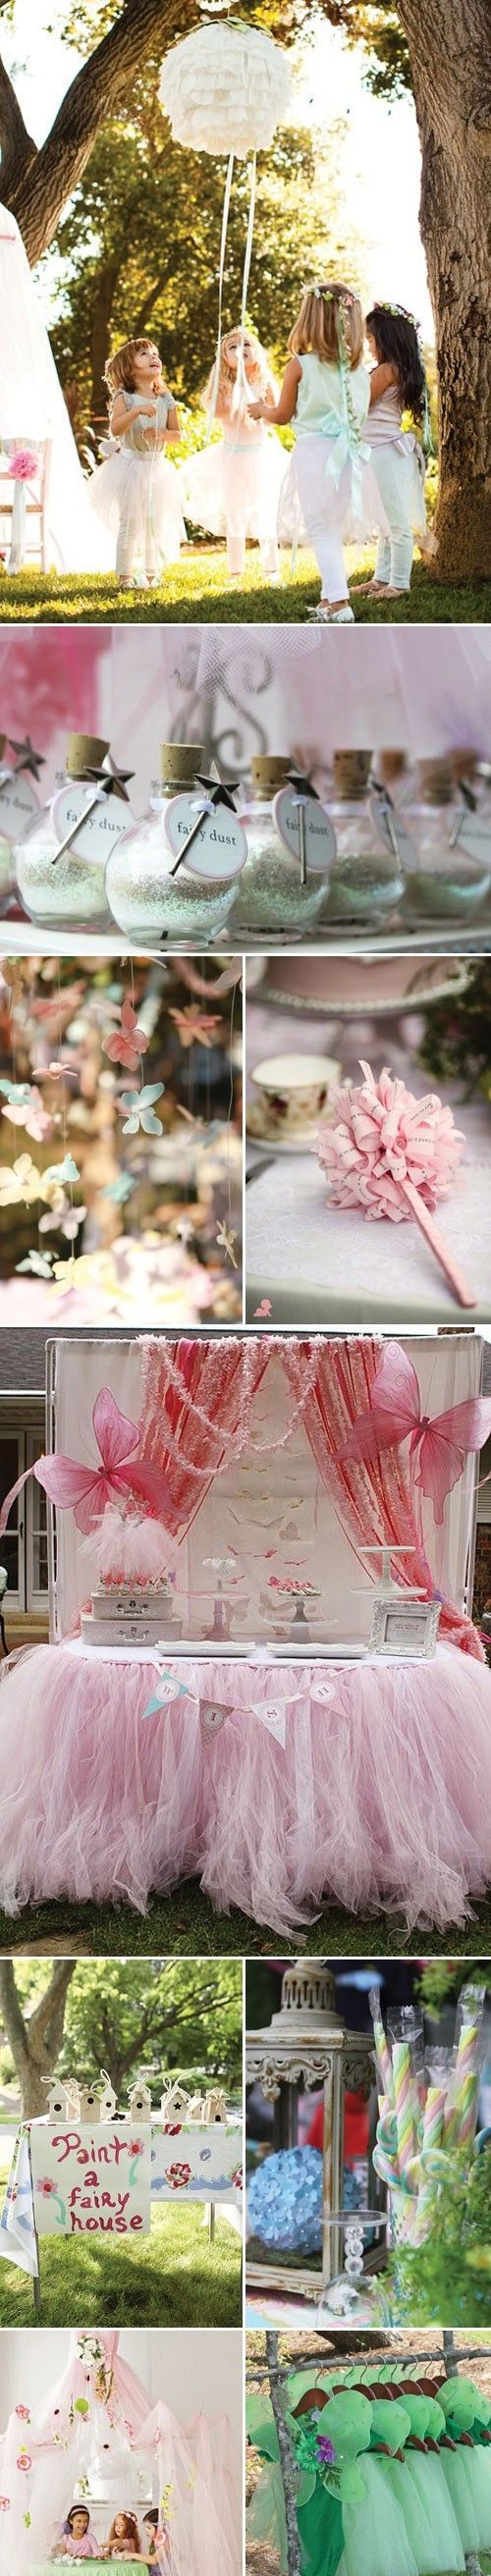 fairy/tea party: I cannot wait until our little girl is here and we can celebrate her birthdays in style :)